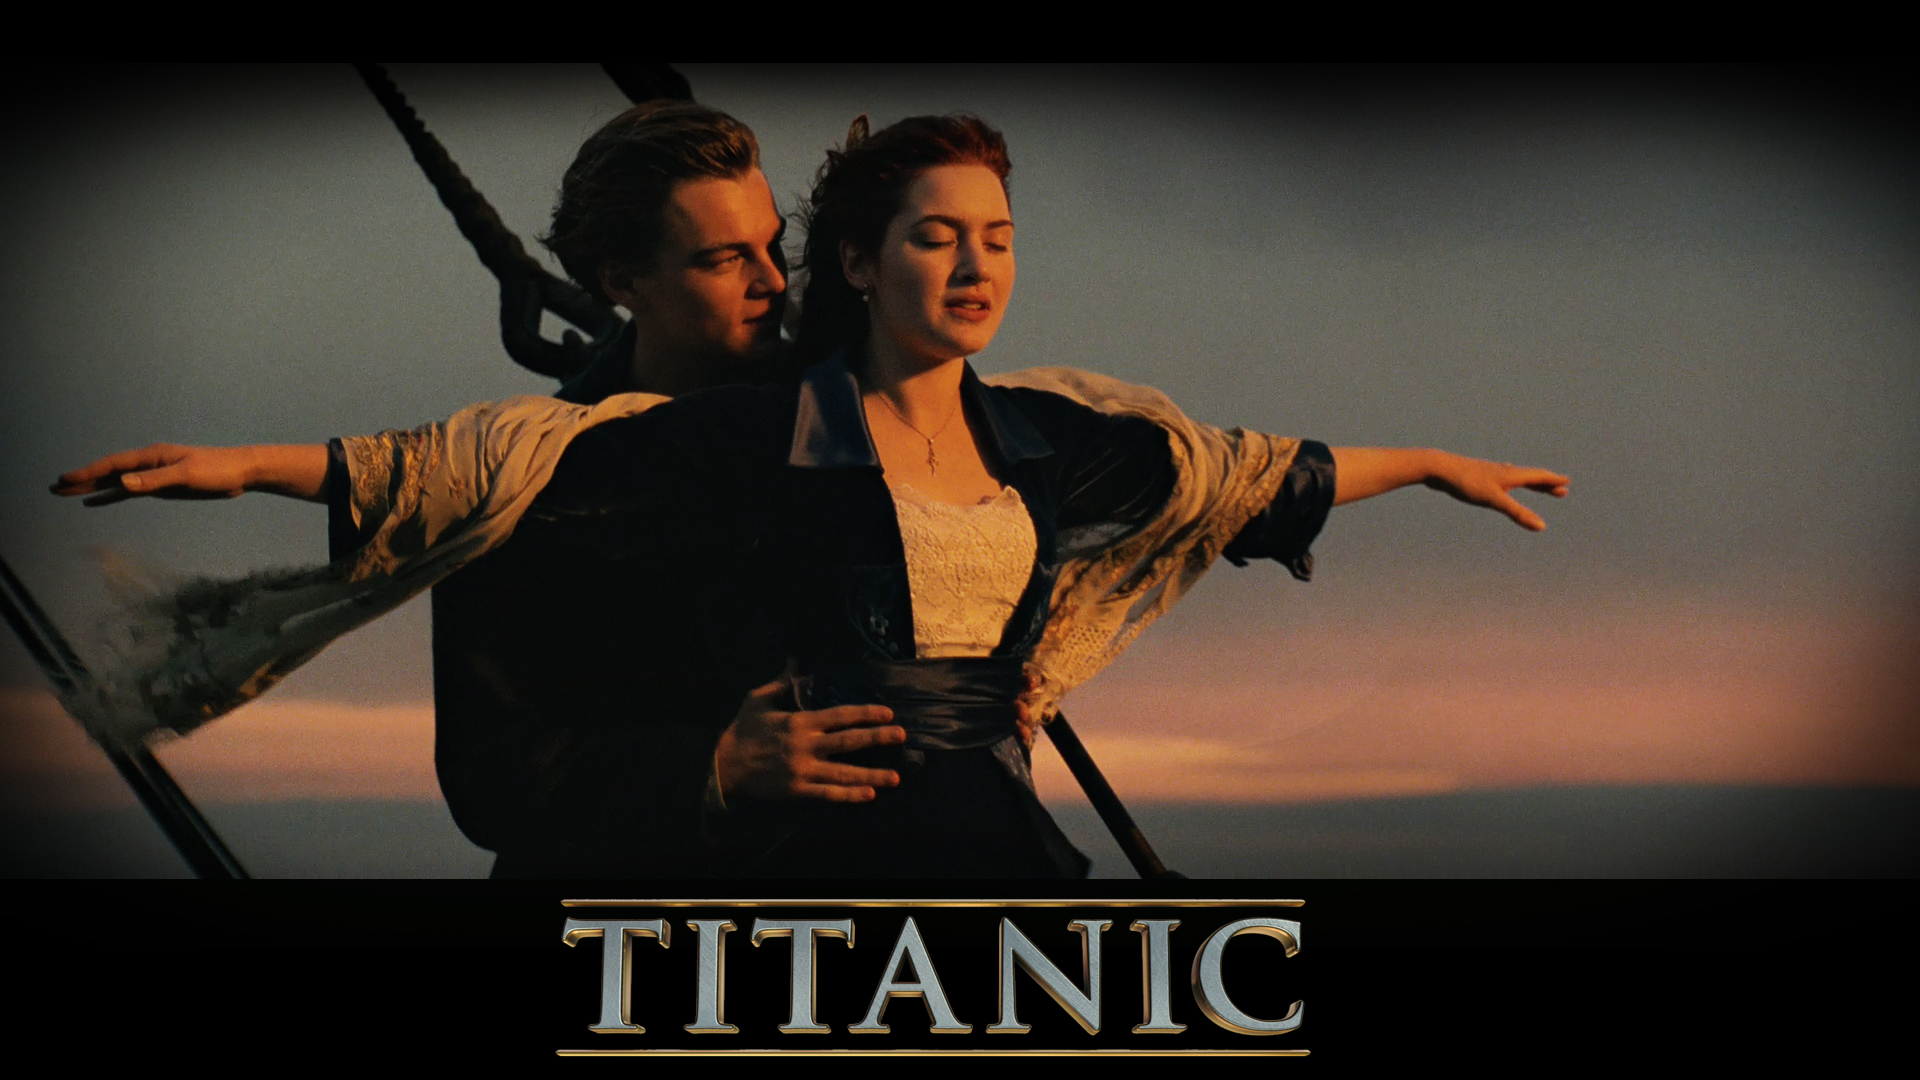 Titanic 3D Wallpapers - coming in April 2012 | Movie ...